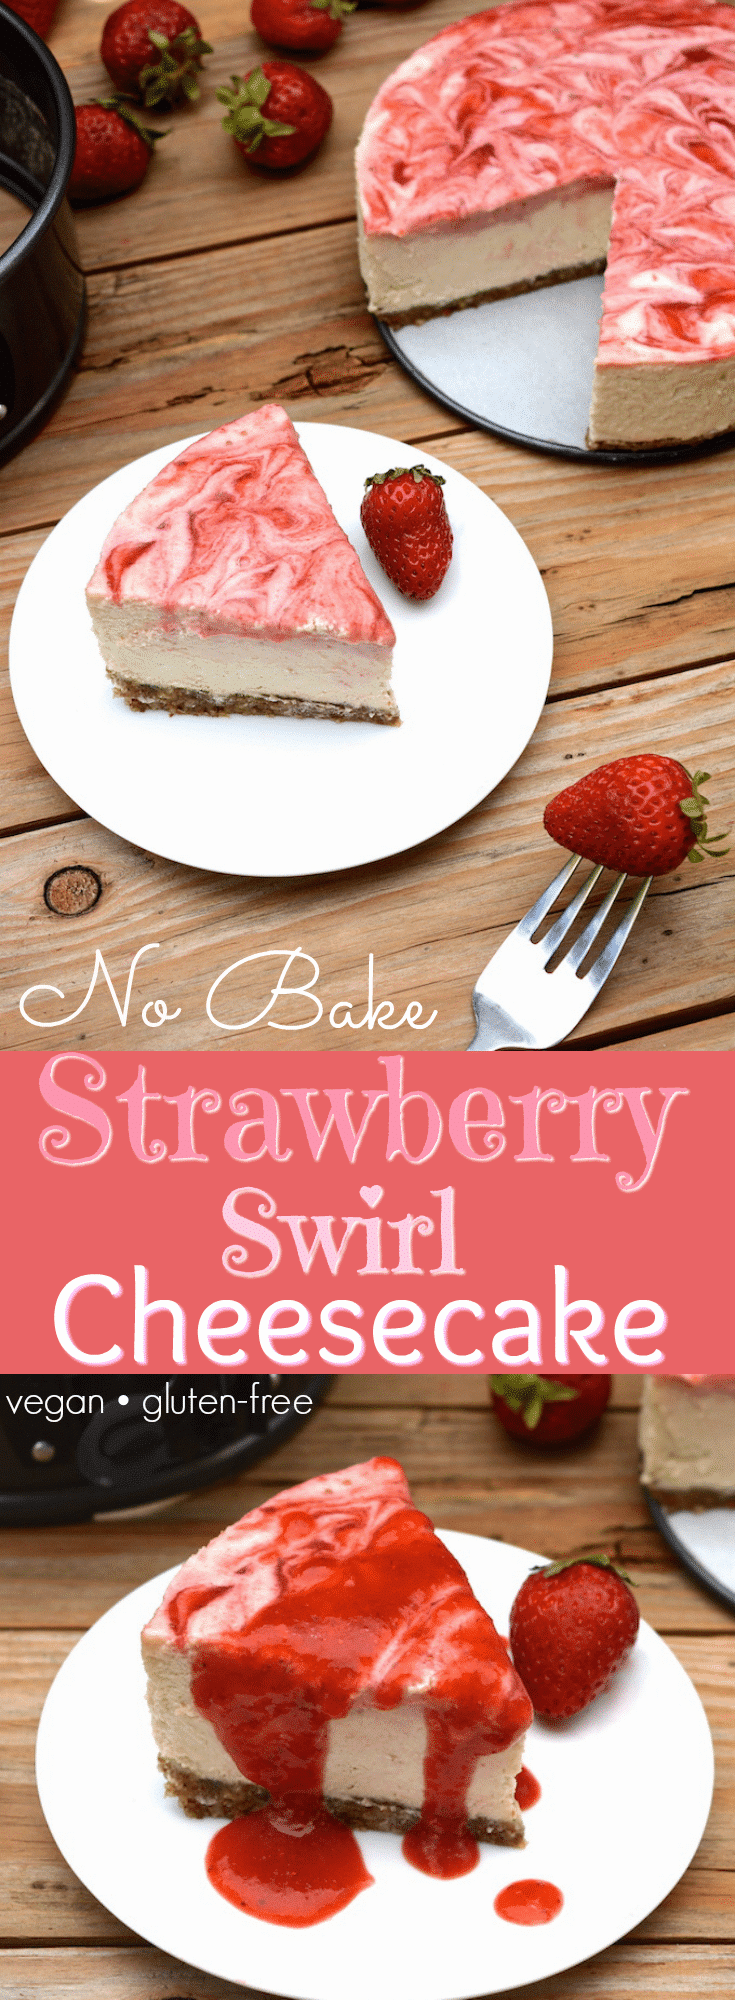 A Vegan Strawberry Swirl Cheesecake worth hoarding! It has an authentic cheesecake taste without the dairy.  This rich & creamy dessert is easy to whip-up, only takes 10 ingredients and includes a fresh strawberry swirl top with extra for drizzling!